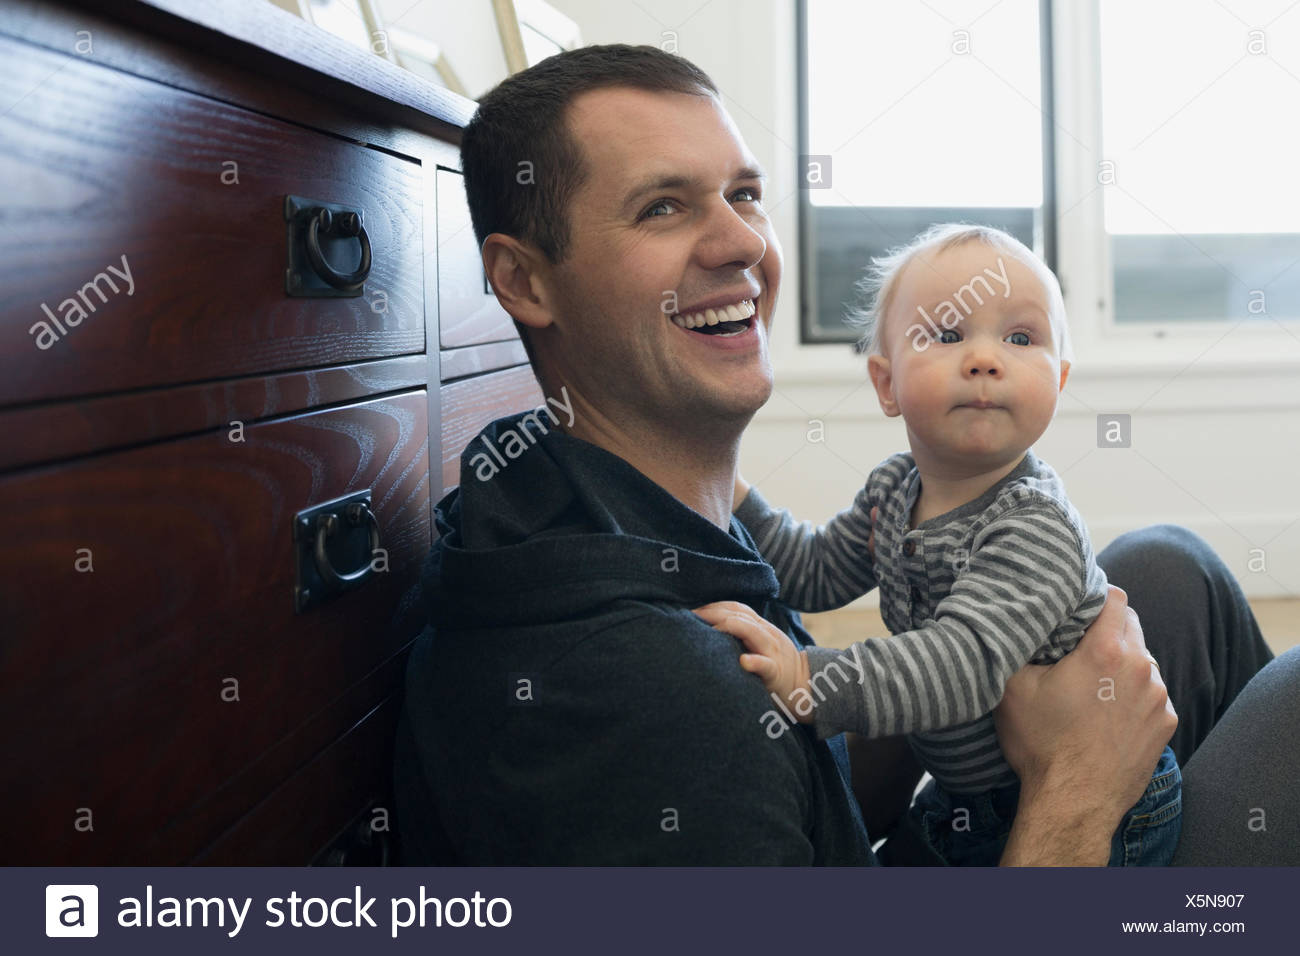 Laughing father holding baby son - Stock Image